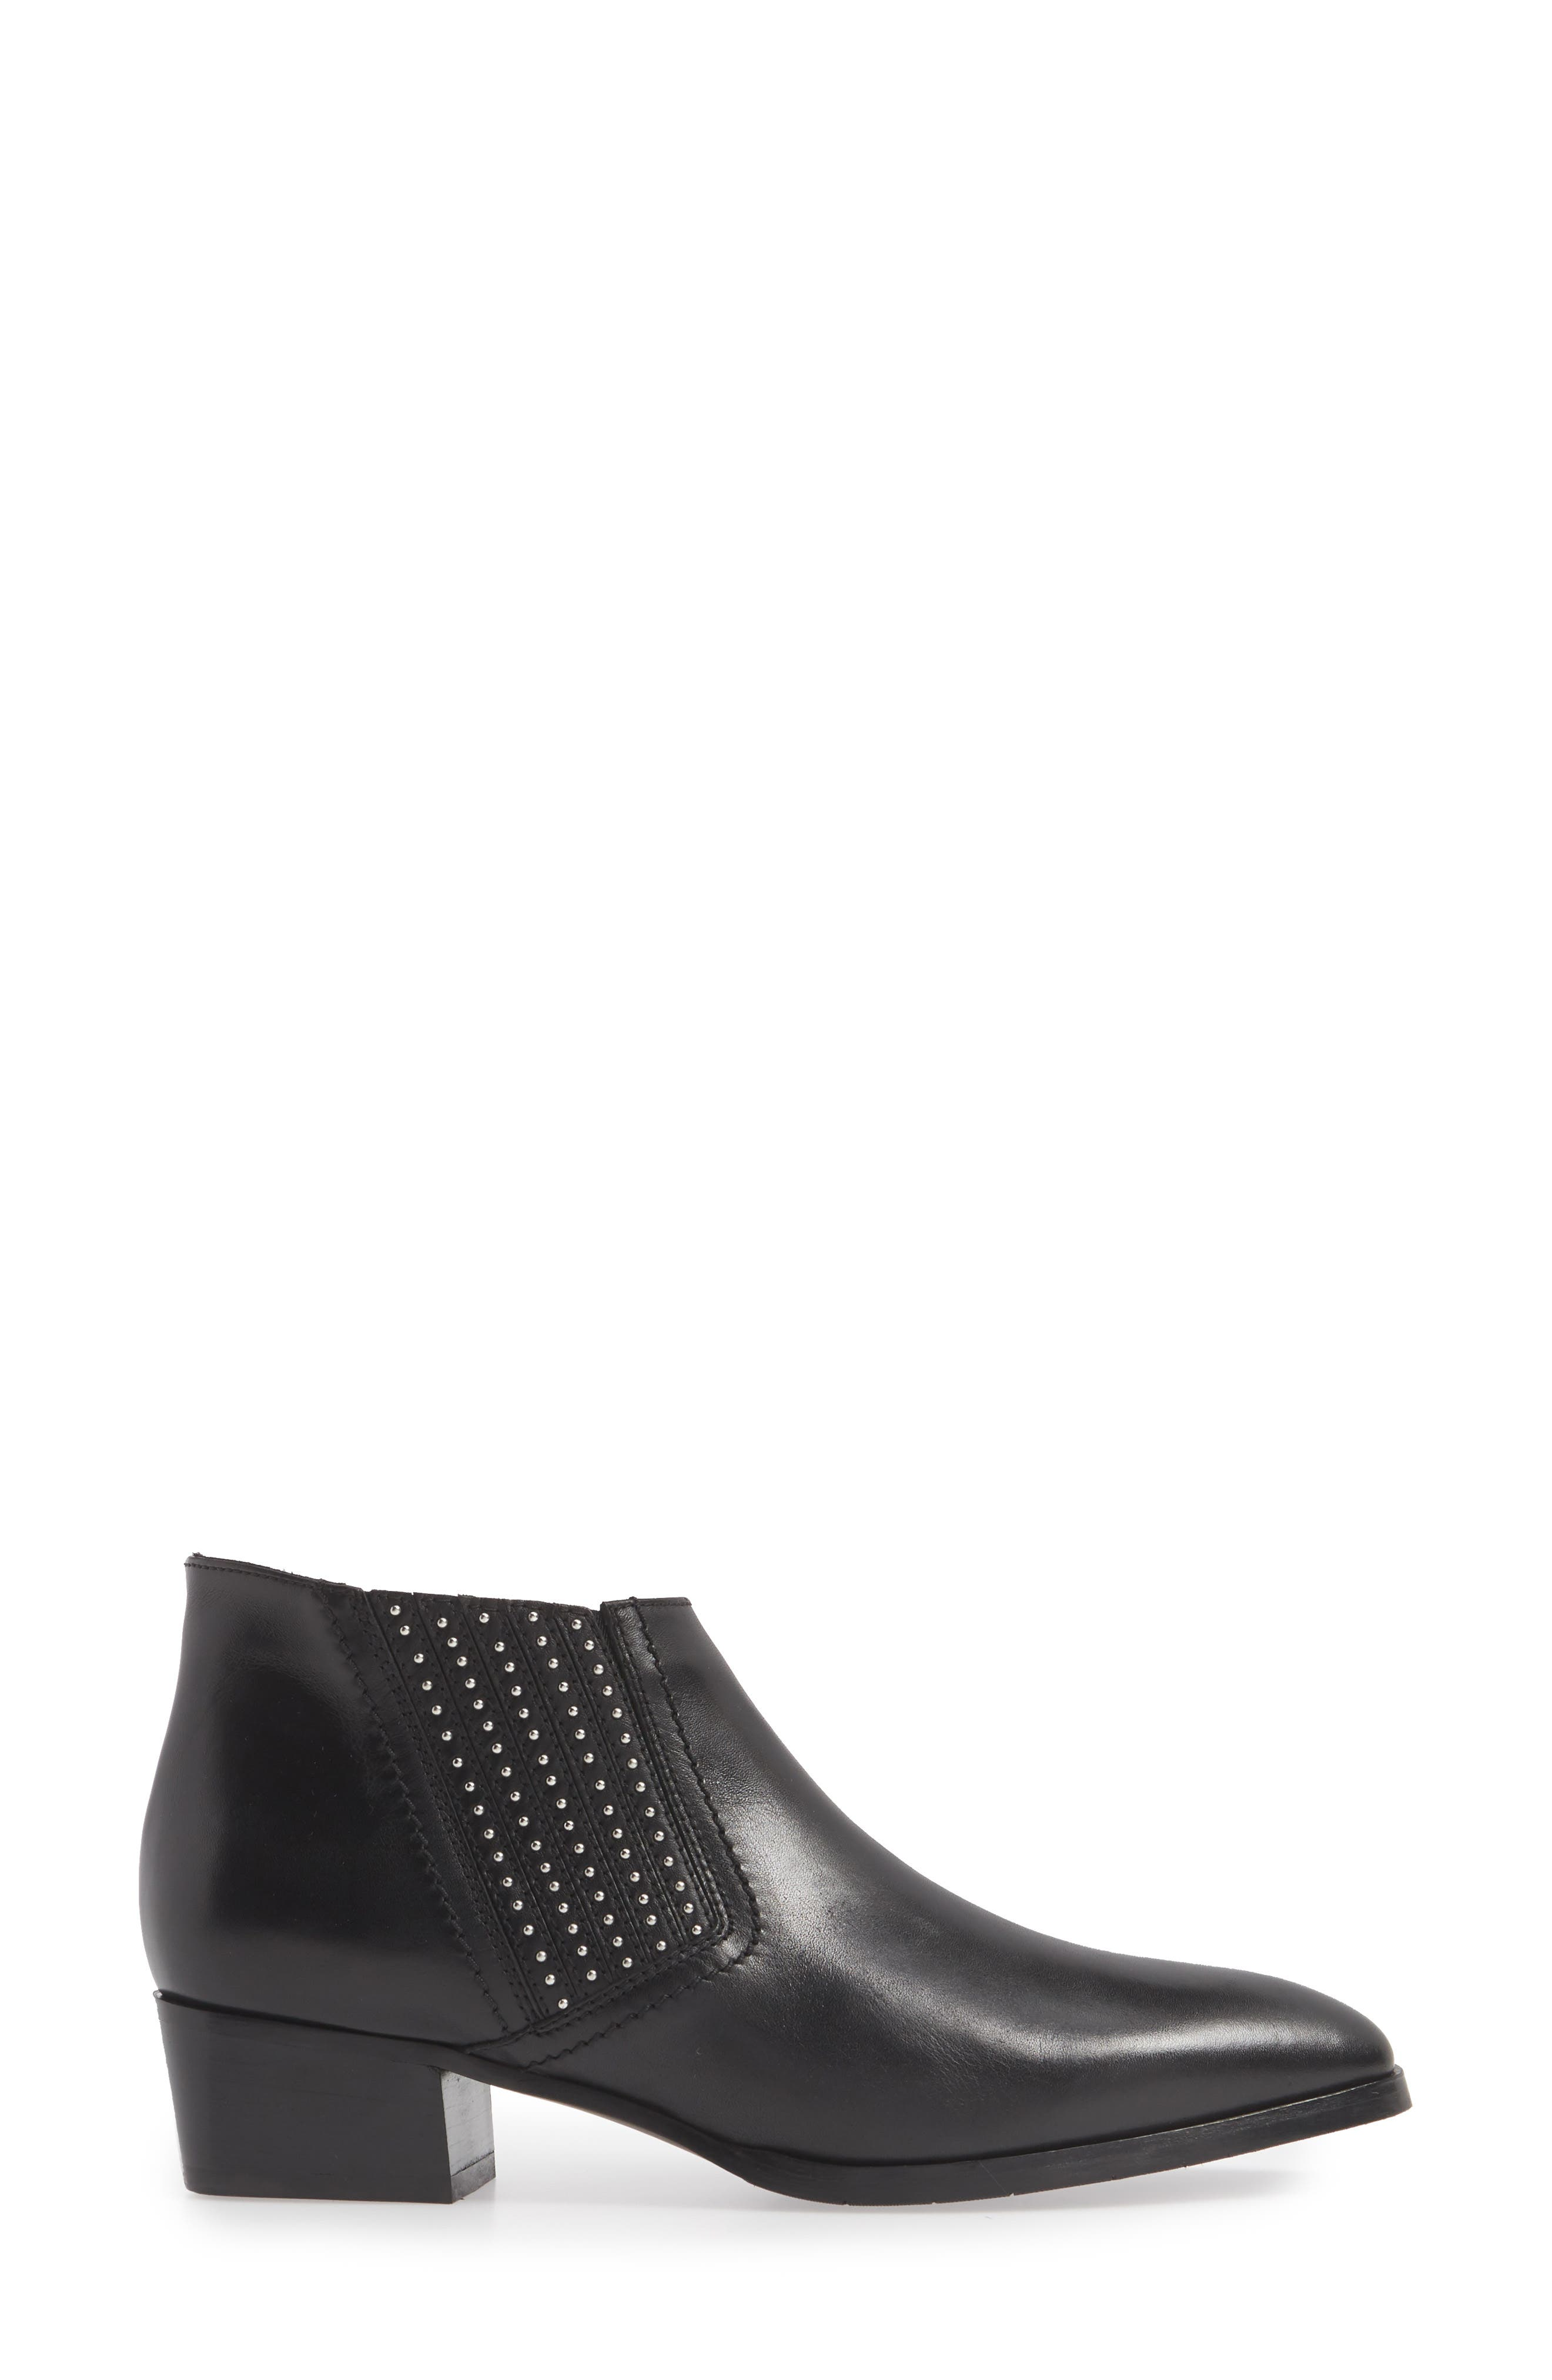 AQUATALIA,                             Fiore Studded Chelsea Bootie,                             Alternate thumbnail 3, color,                             BLACK LEATHER